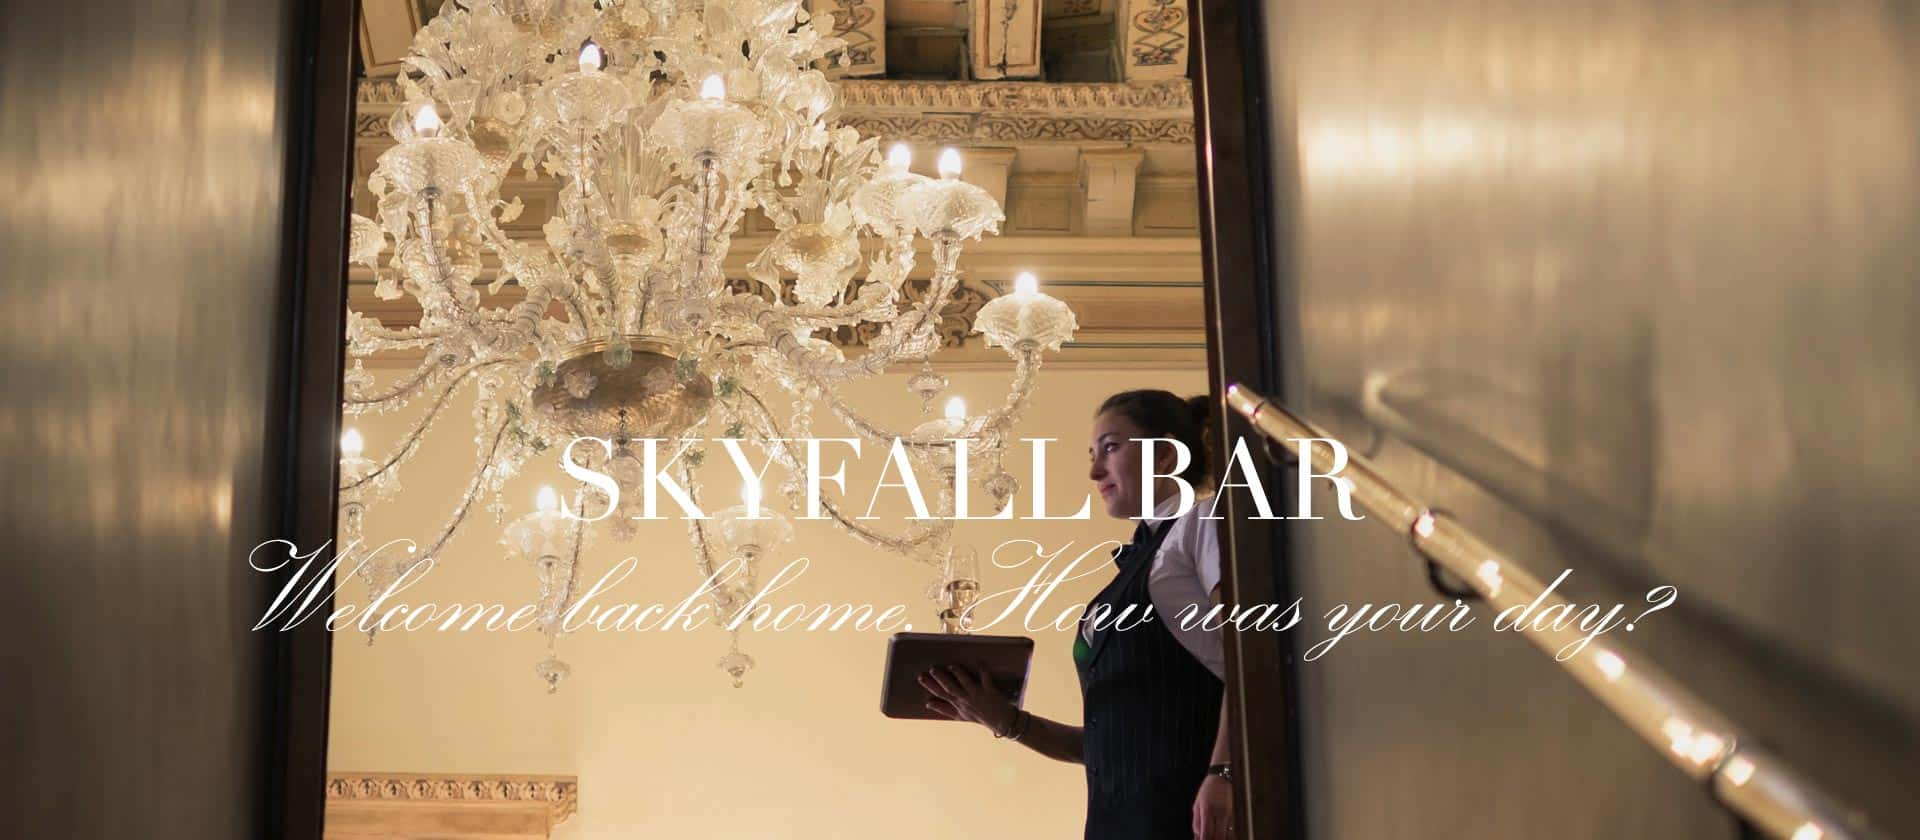 Skyfall bar